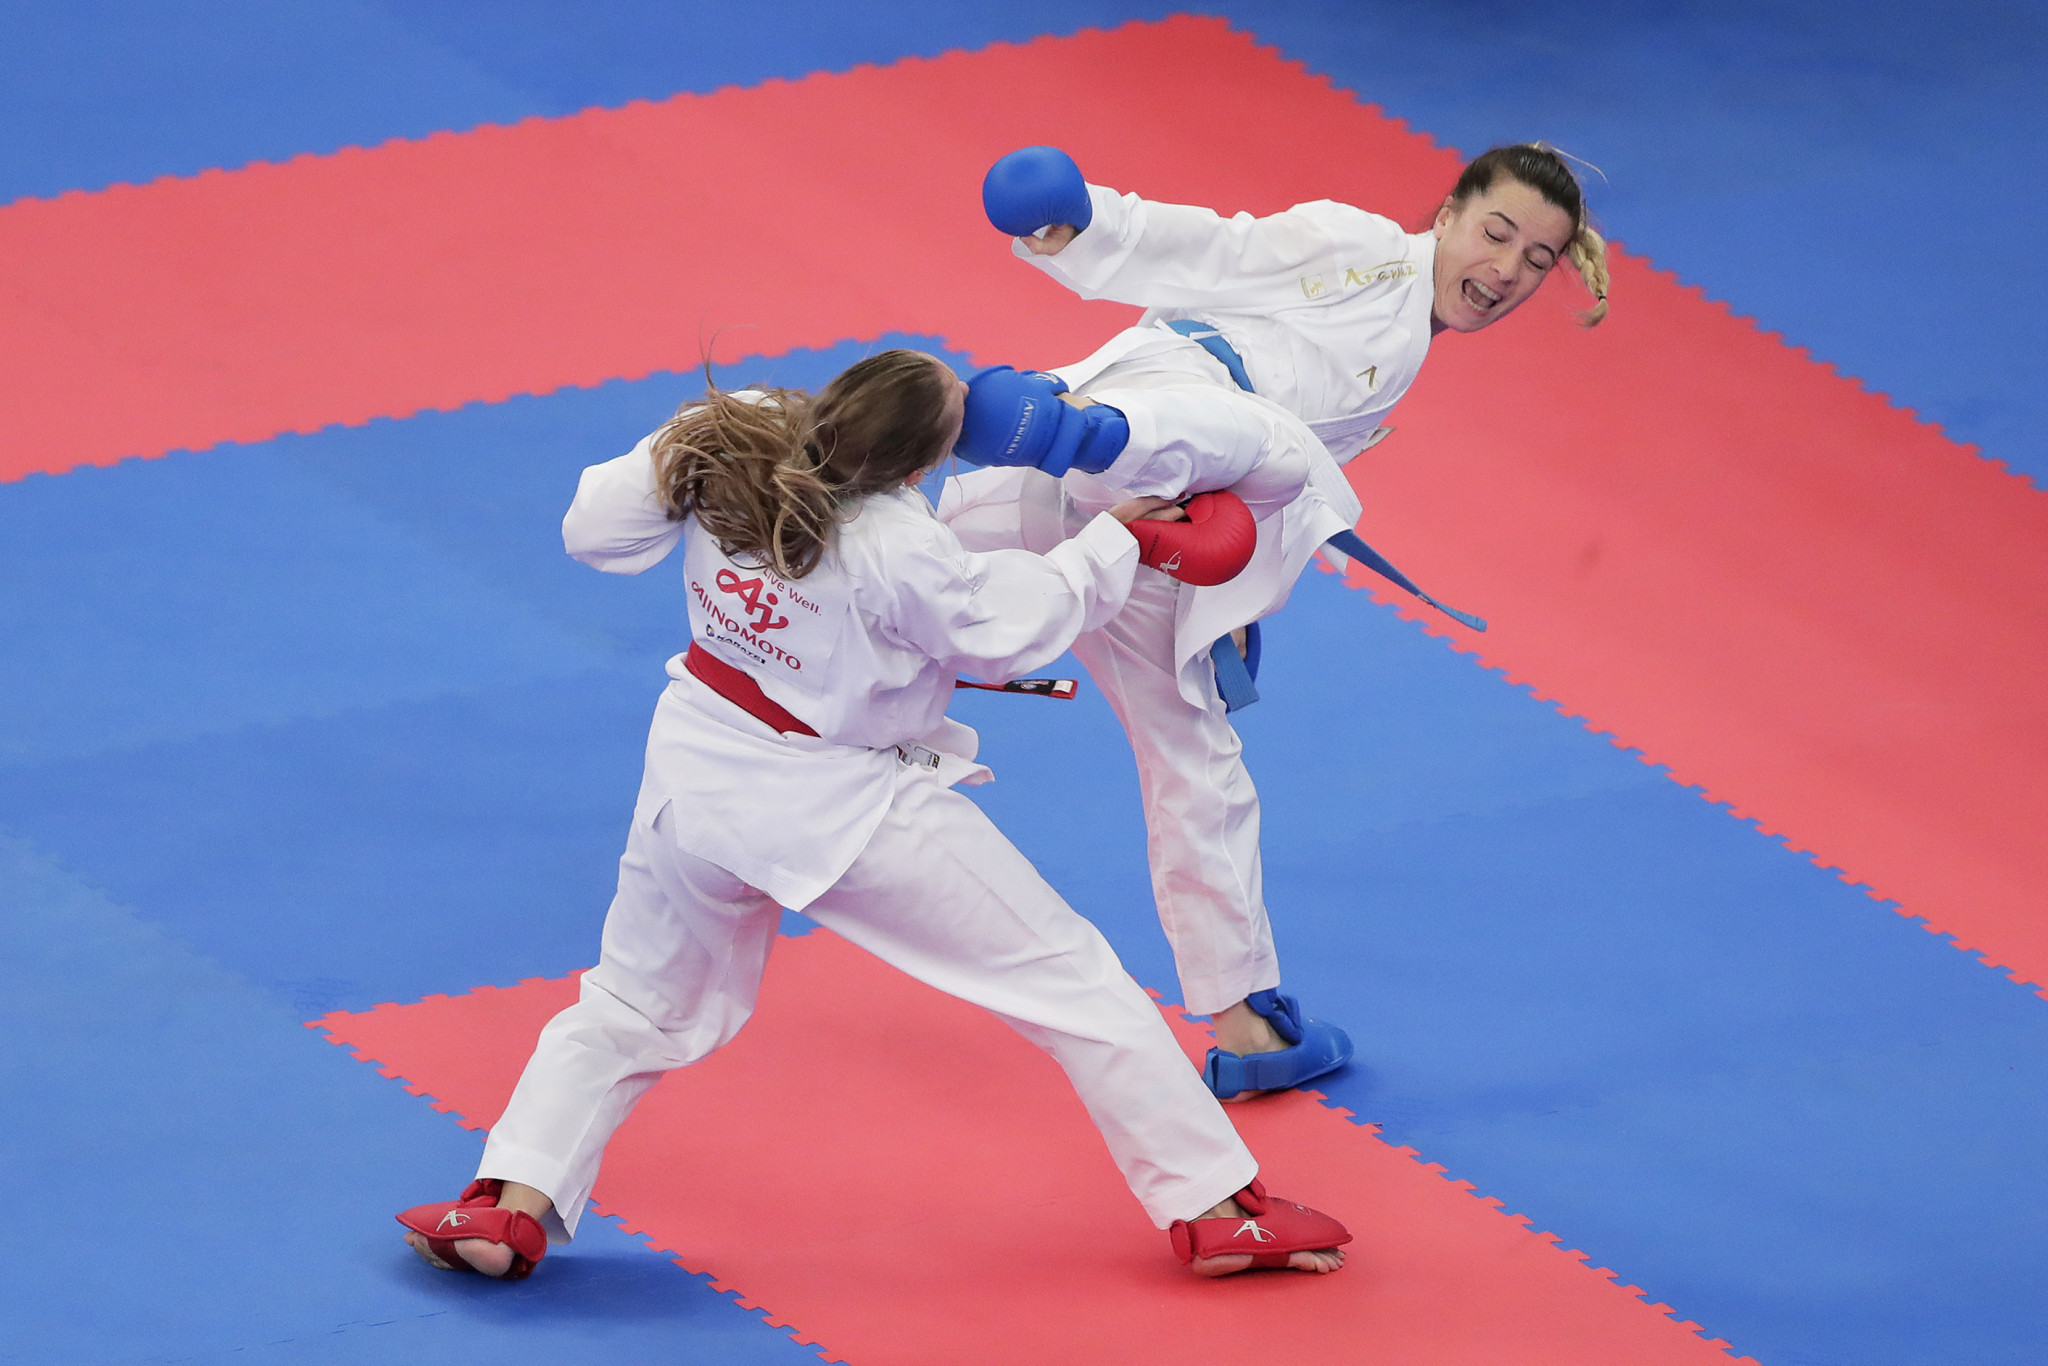 World ranking leader Serap Ozcelik Arapoglu, in blue, produced a dominant display to reach the final of the women's kumite under-50kg category in Porec ©Getty Images